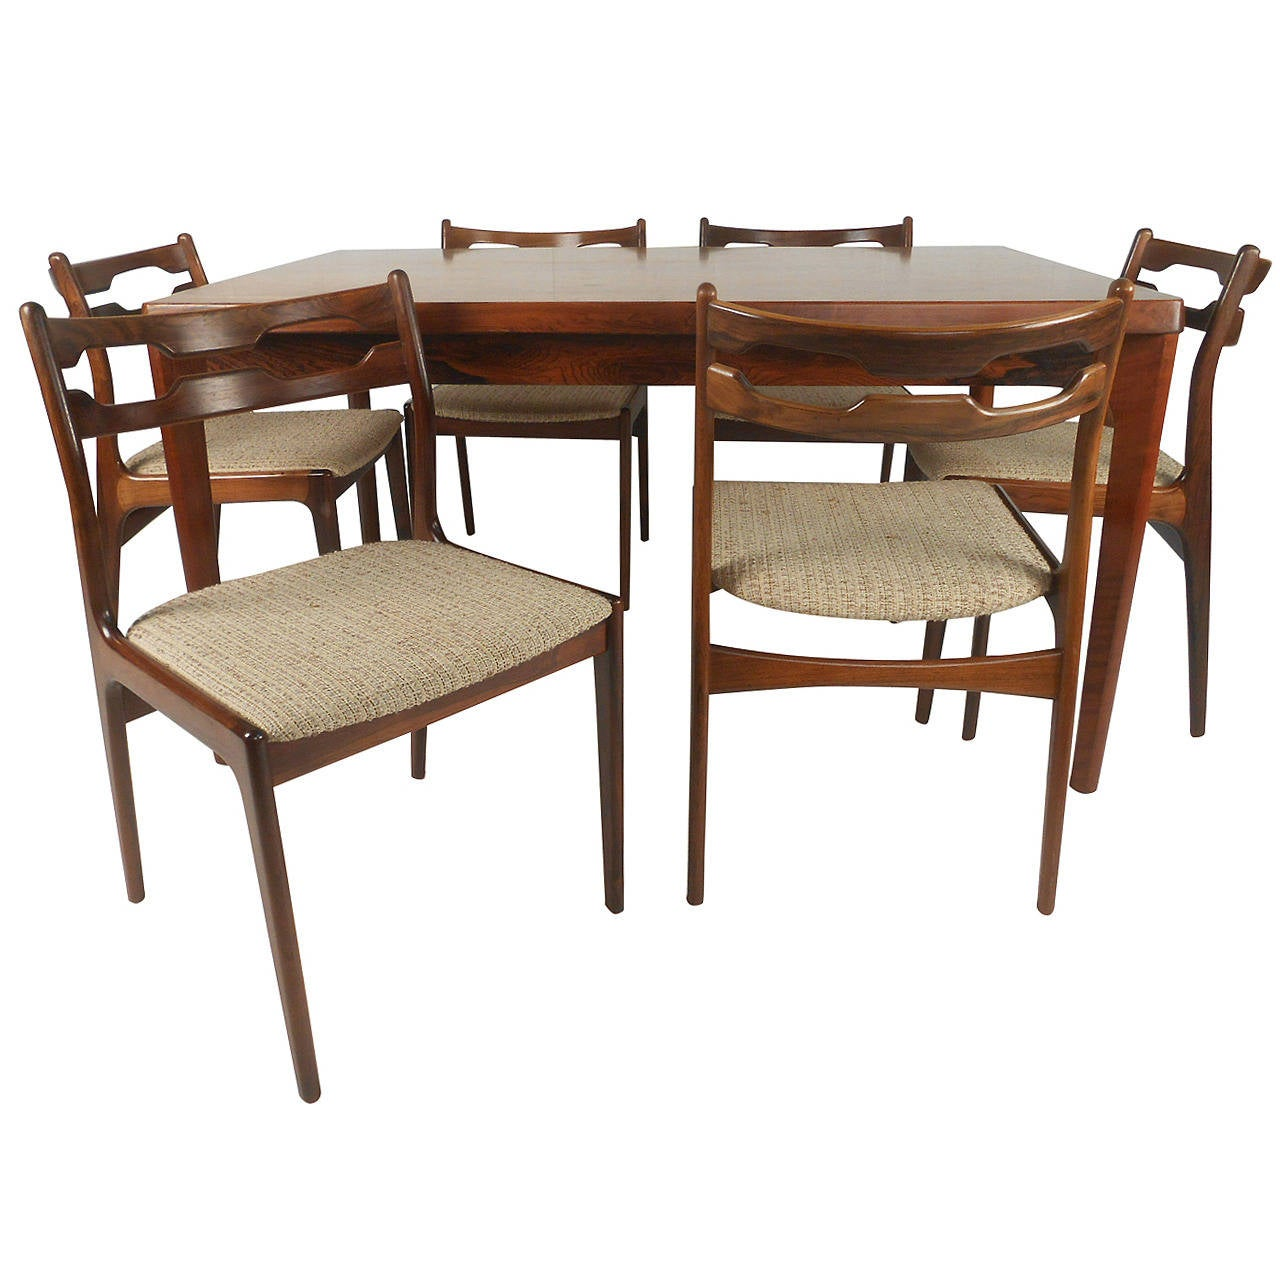 Johannes Andersen Dining Table and Chairs